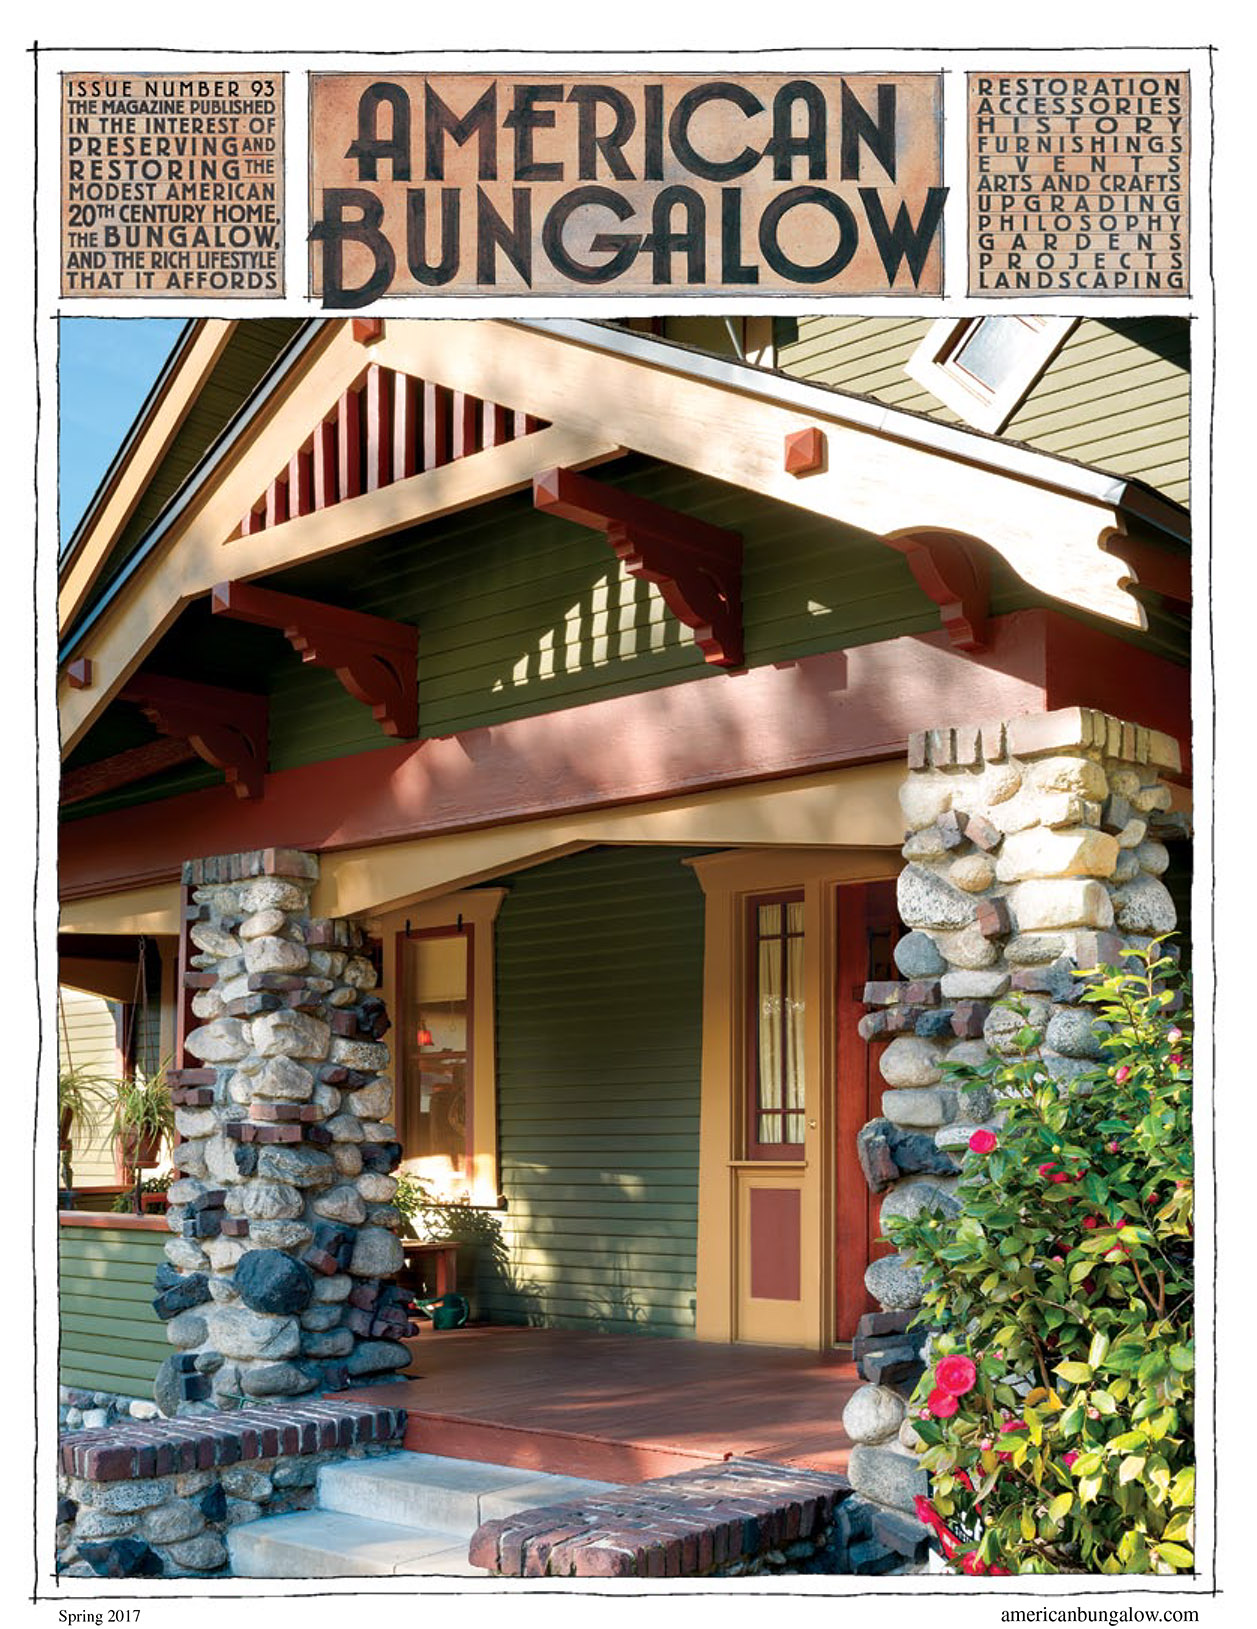 american bungalow magazine american bungalow magazine online american bungalow magazine american bungalow magazine online your source for bungalow and arts crafts news